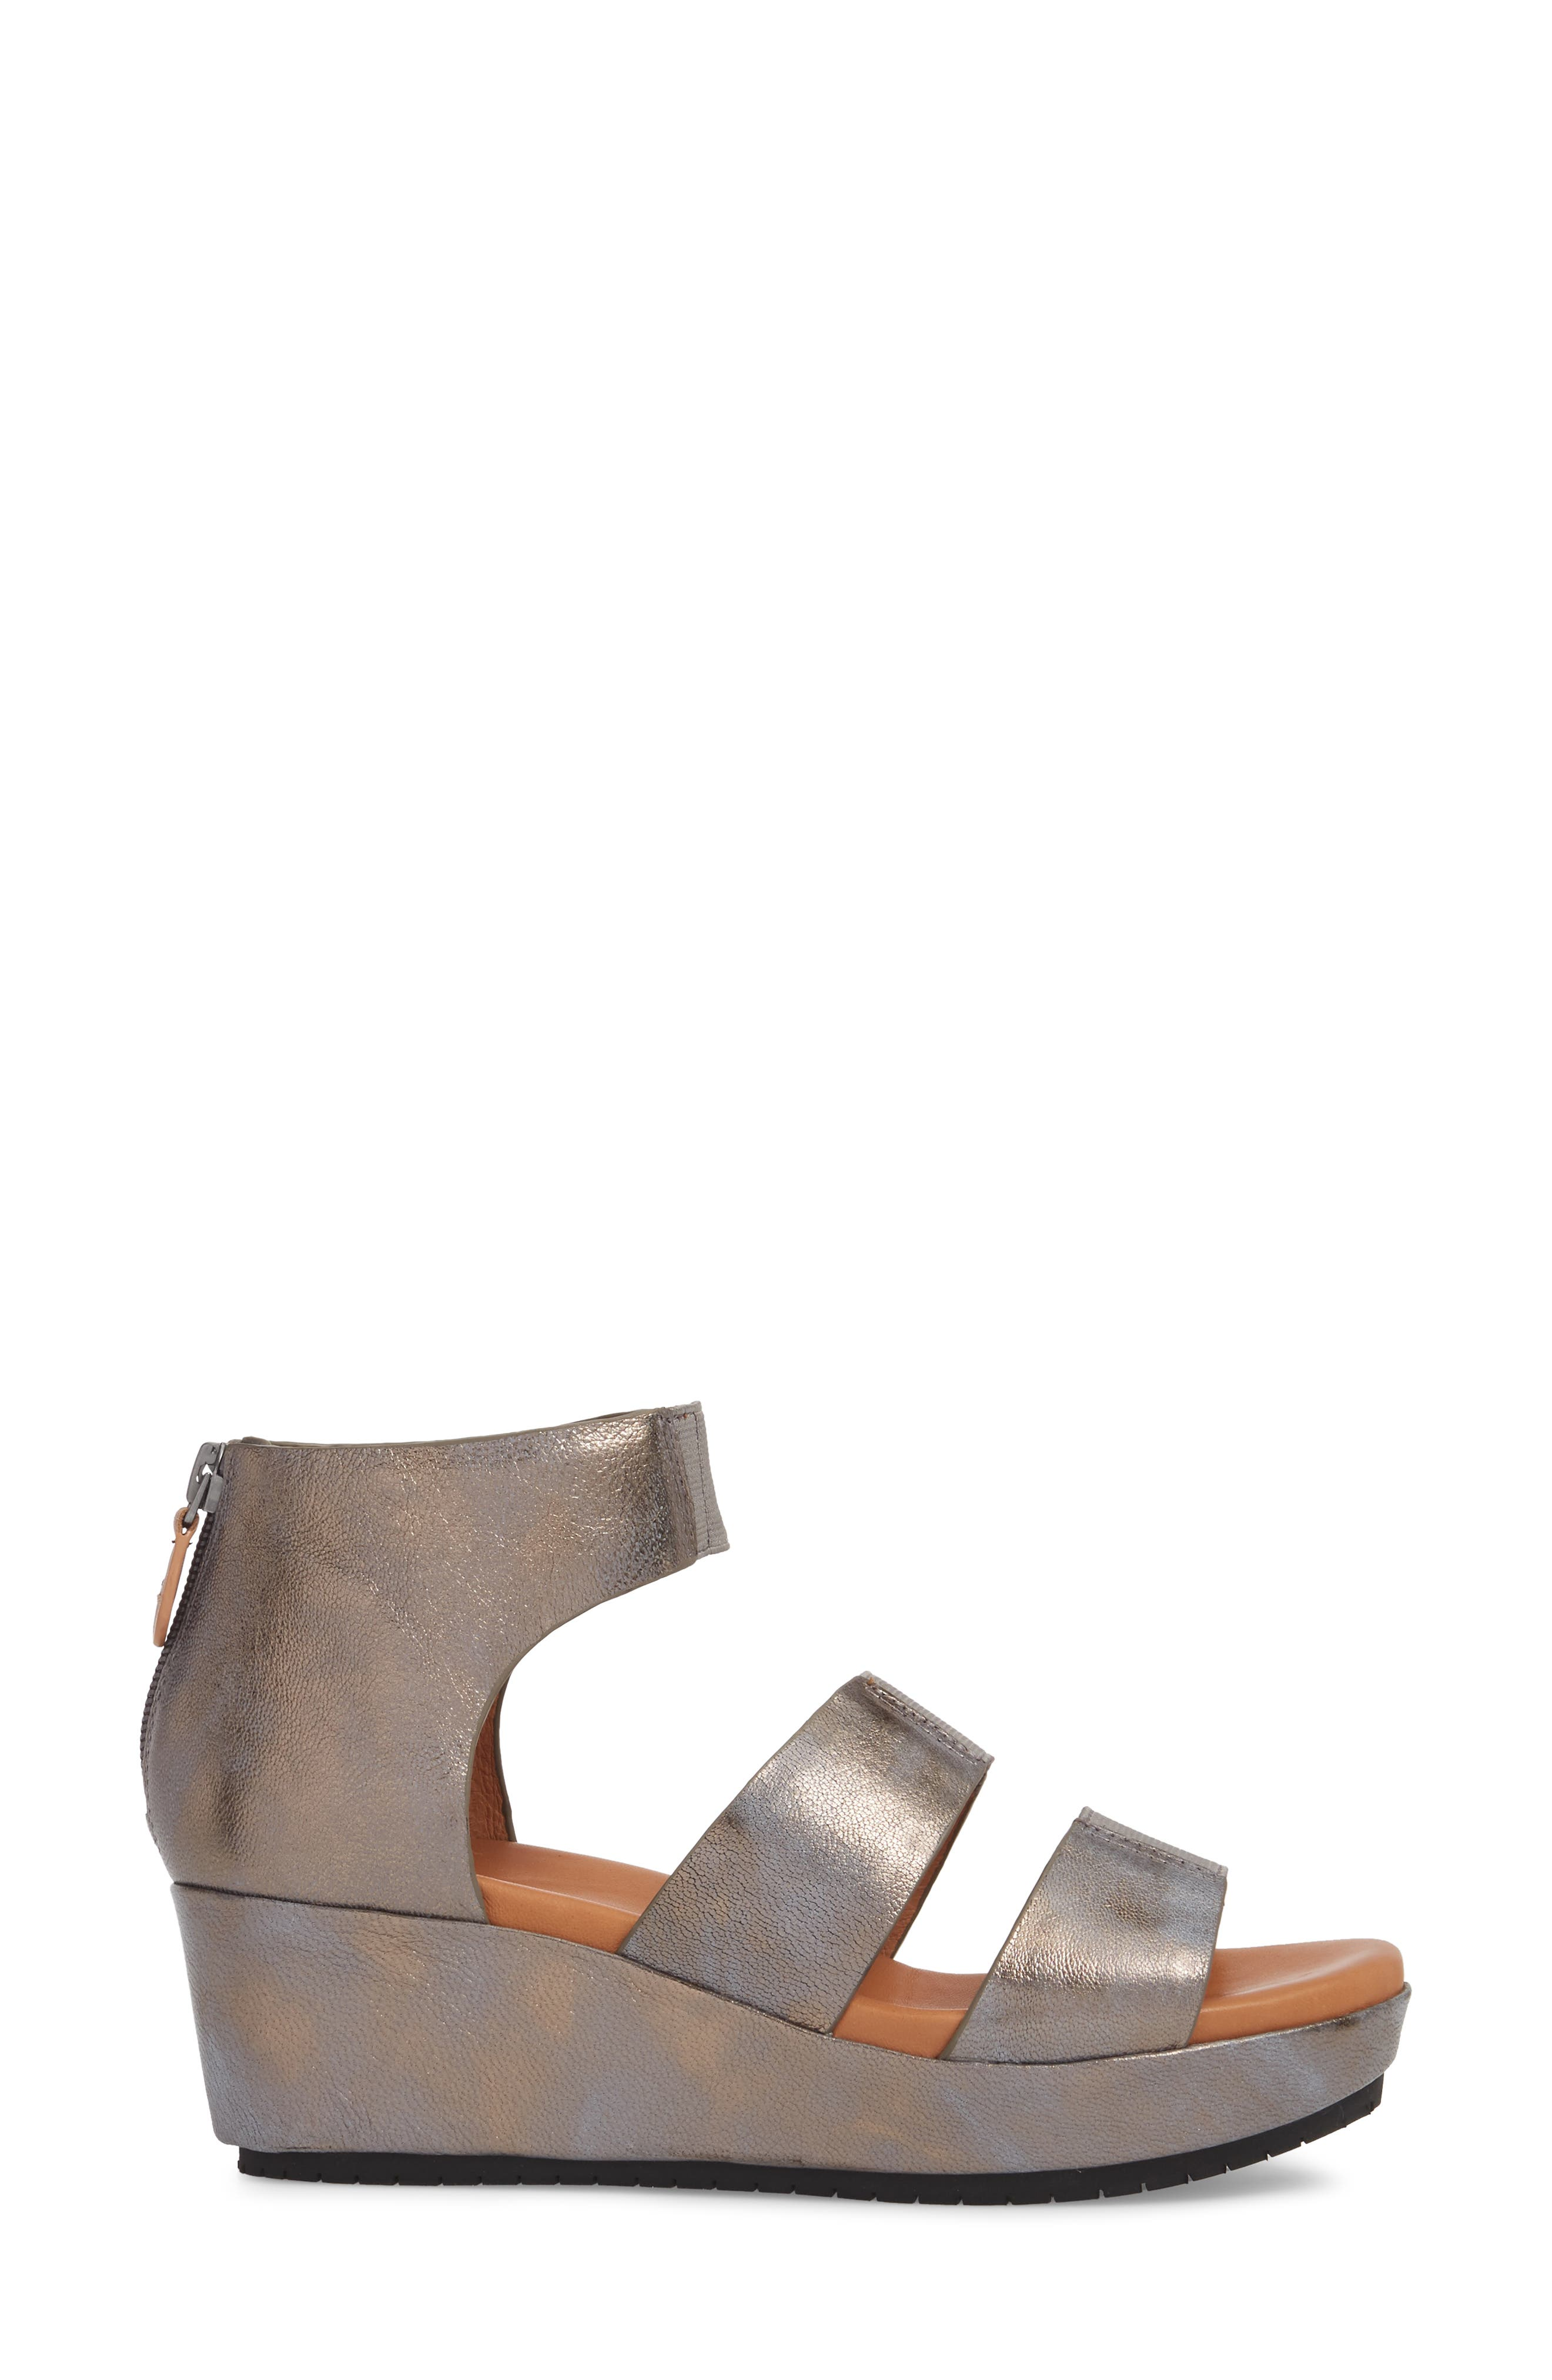 GENTLE SOULS BY KENNETH COLE, Milena Wedge Sandal, Alternate thumbnail 3, color, PEWTER METALLIC LEATHER